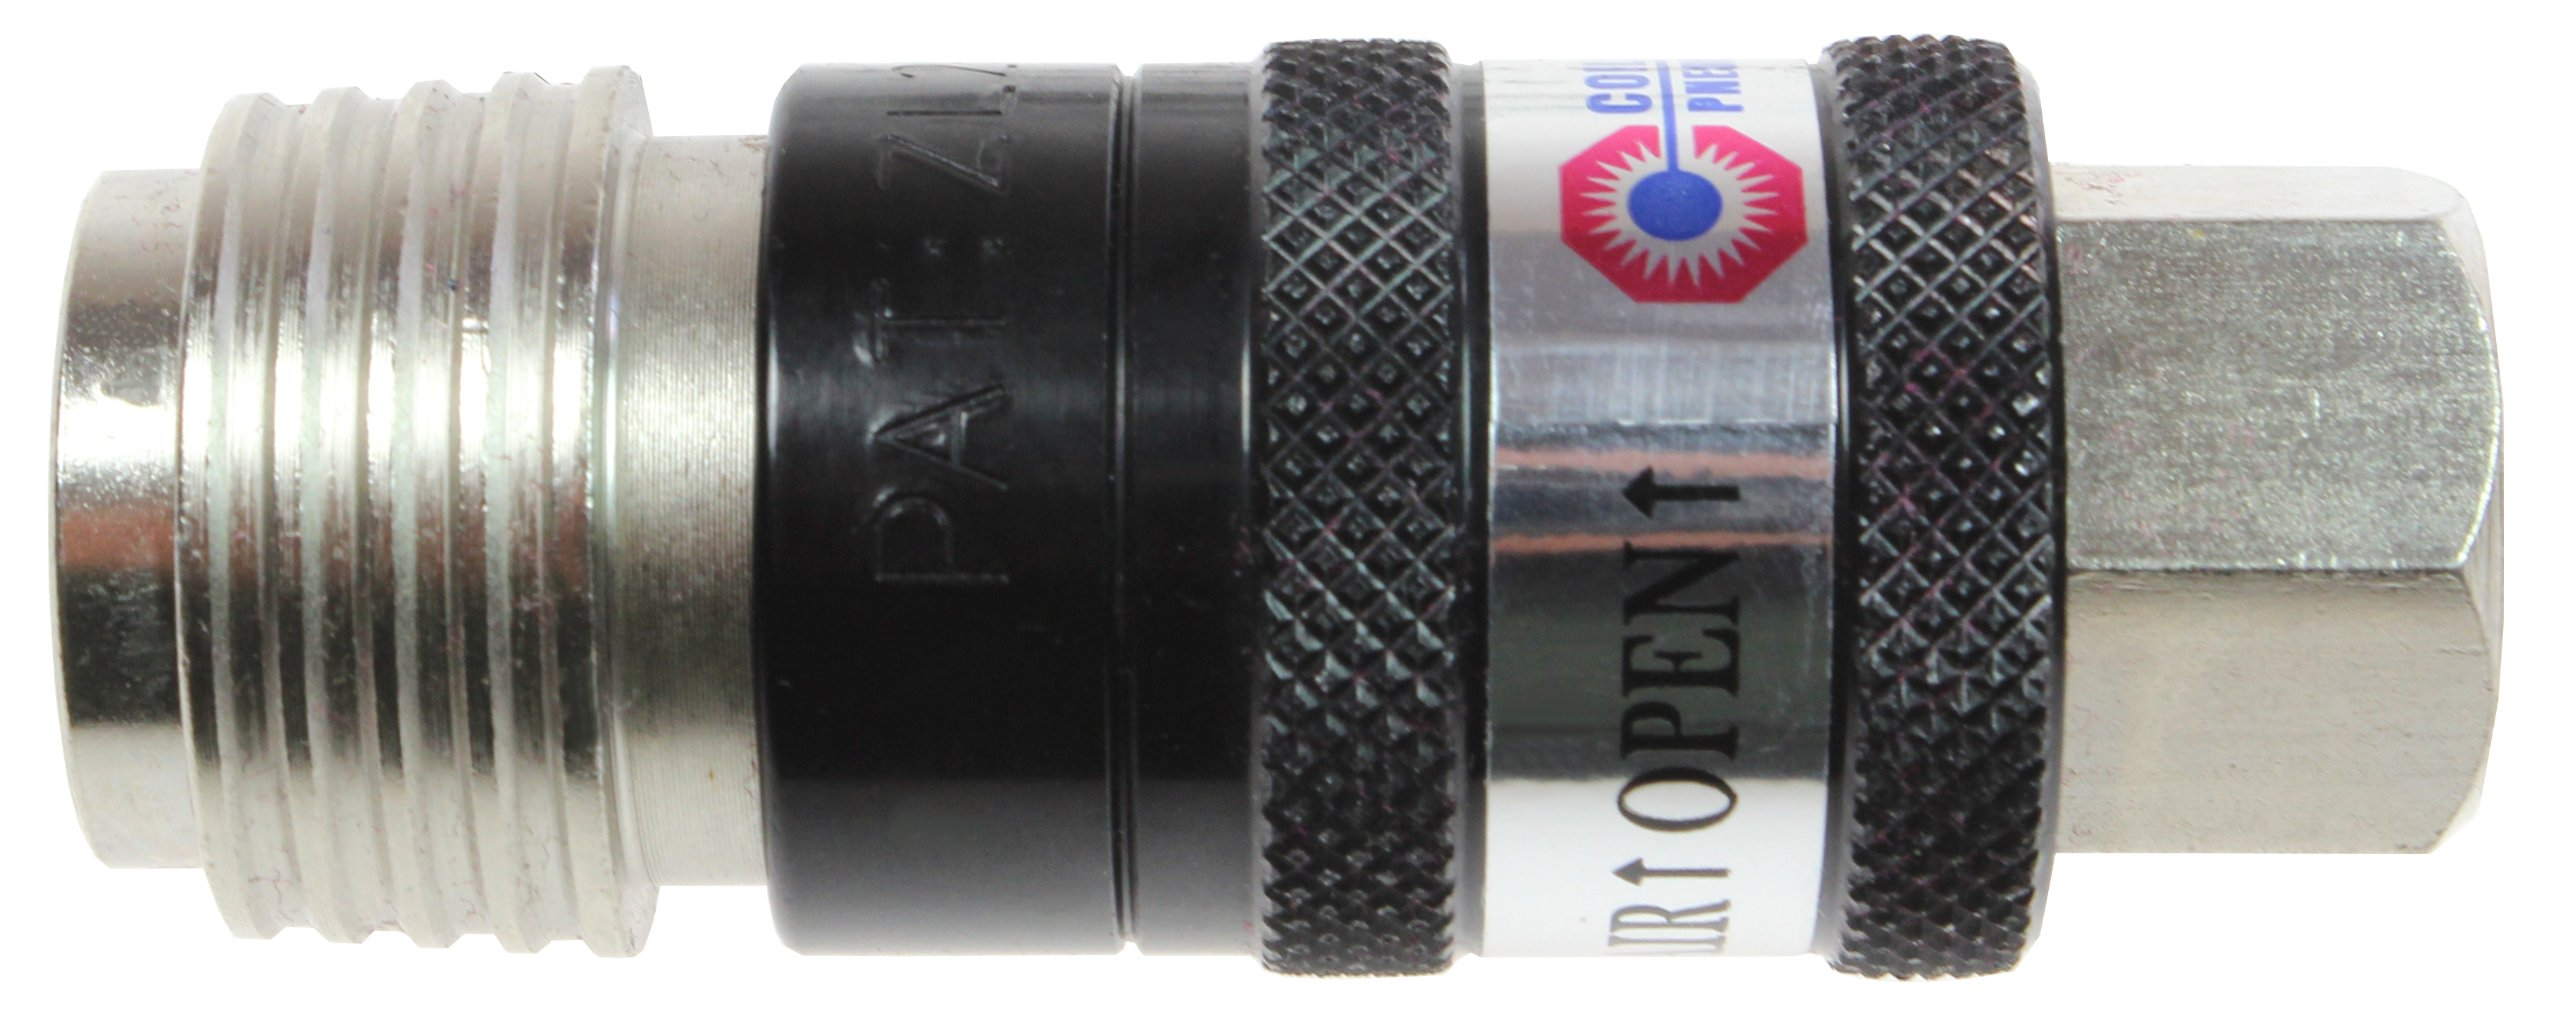 Coilhose Pneumatics 150USE 5-In-1 Automatic Safety Exhaust Coupler, 1/4'' Body x 1/4'' NPT Female, Black/Silver by Coilhose Pneumatics (Image #1)